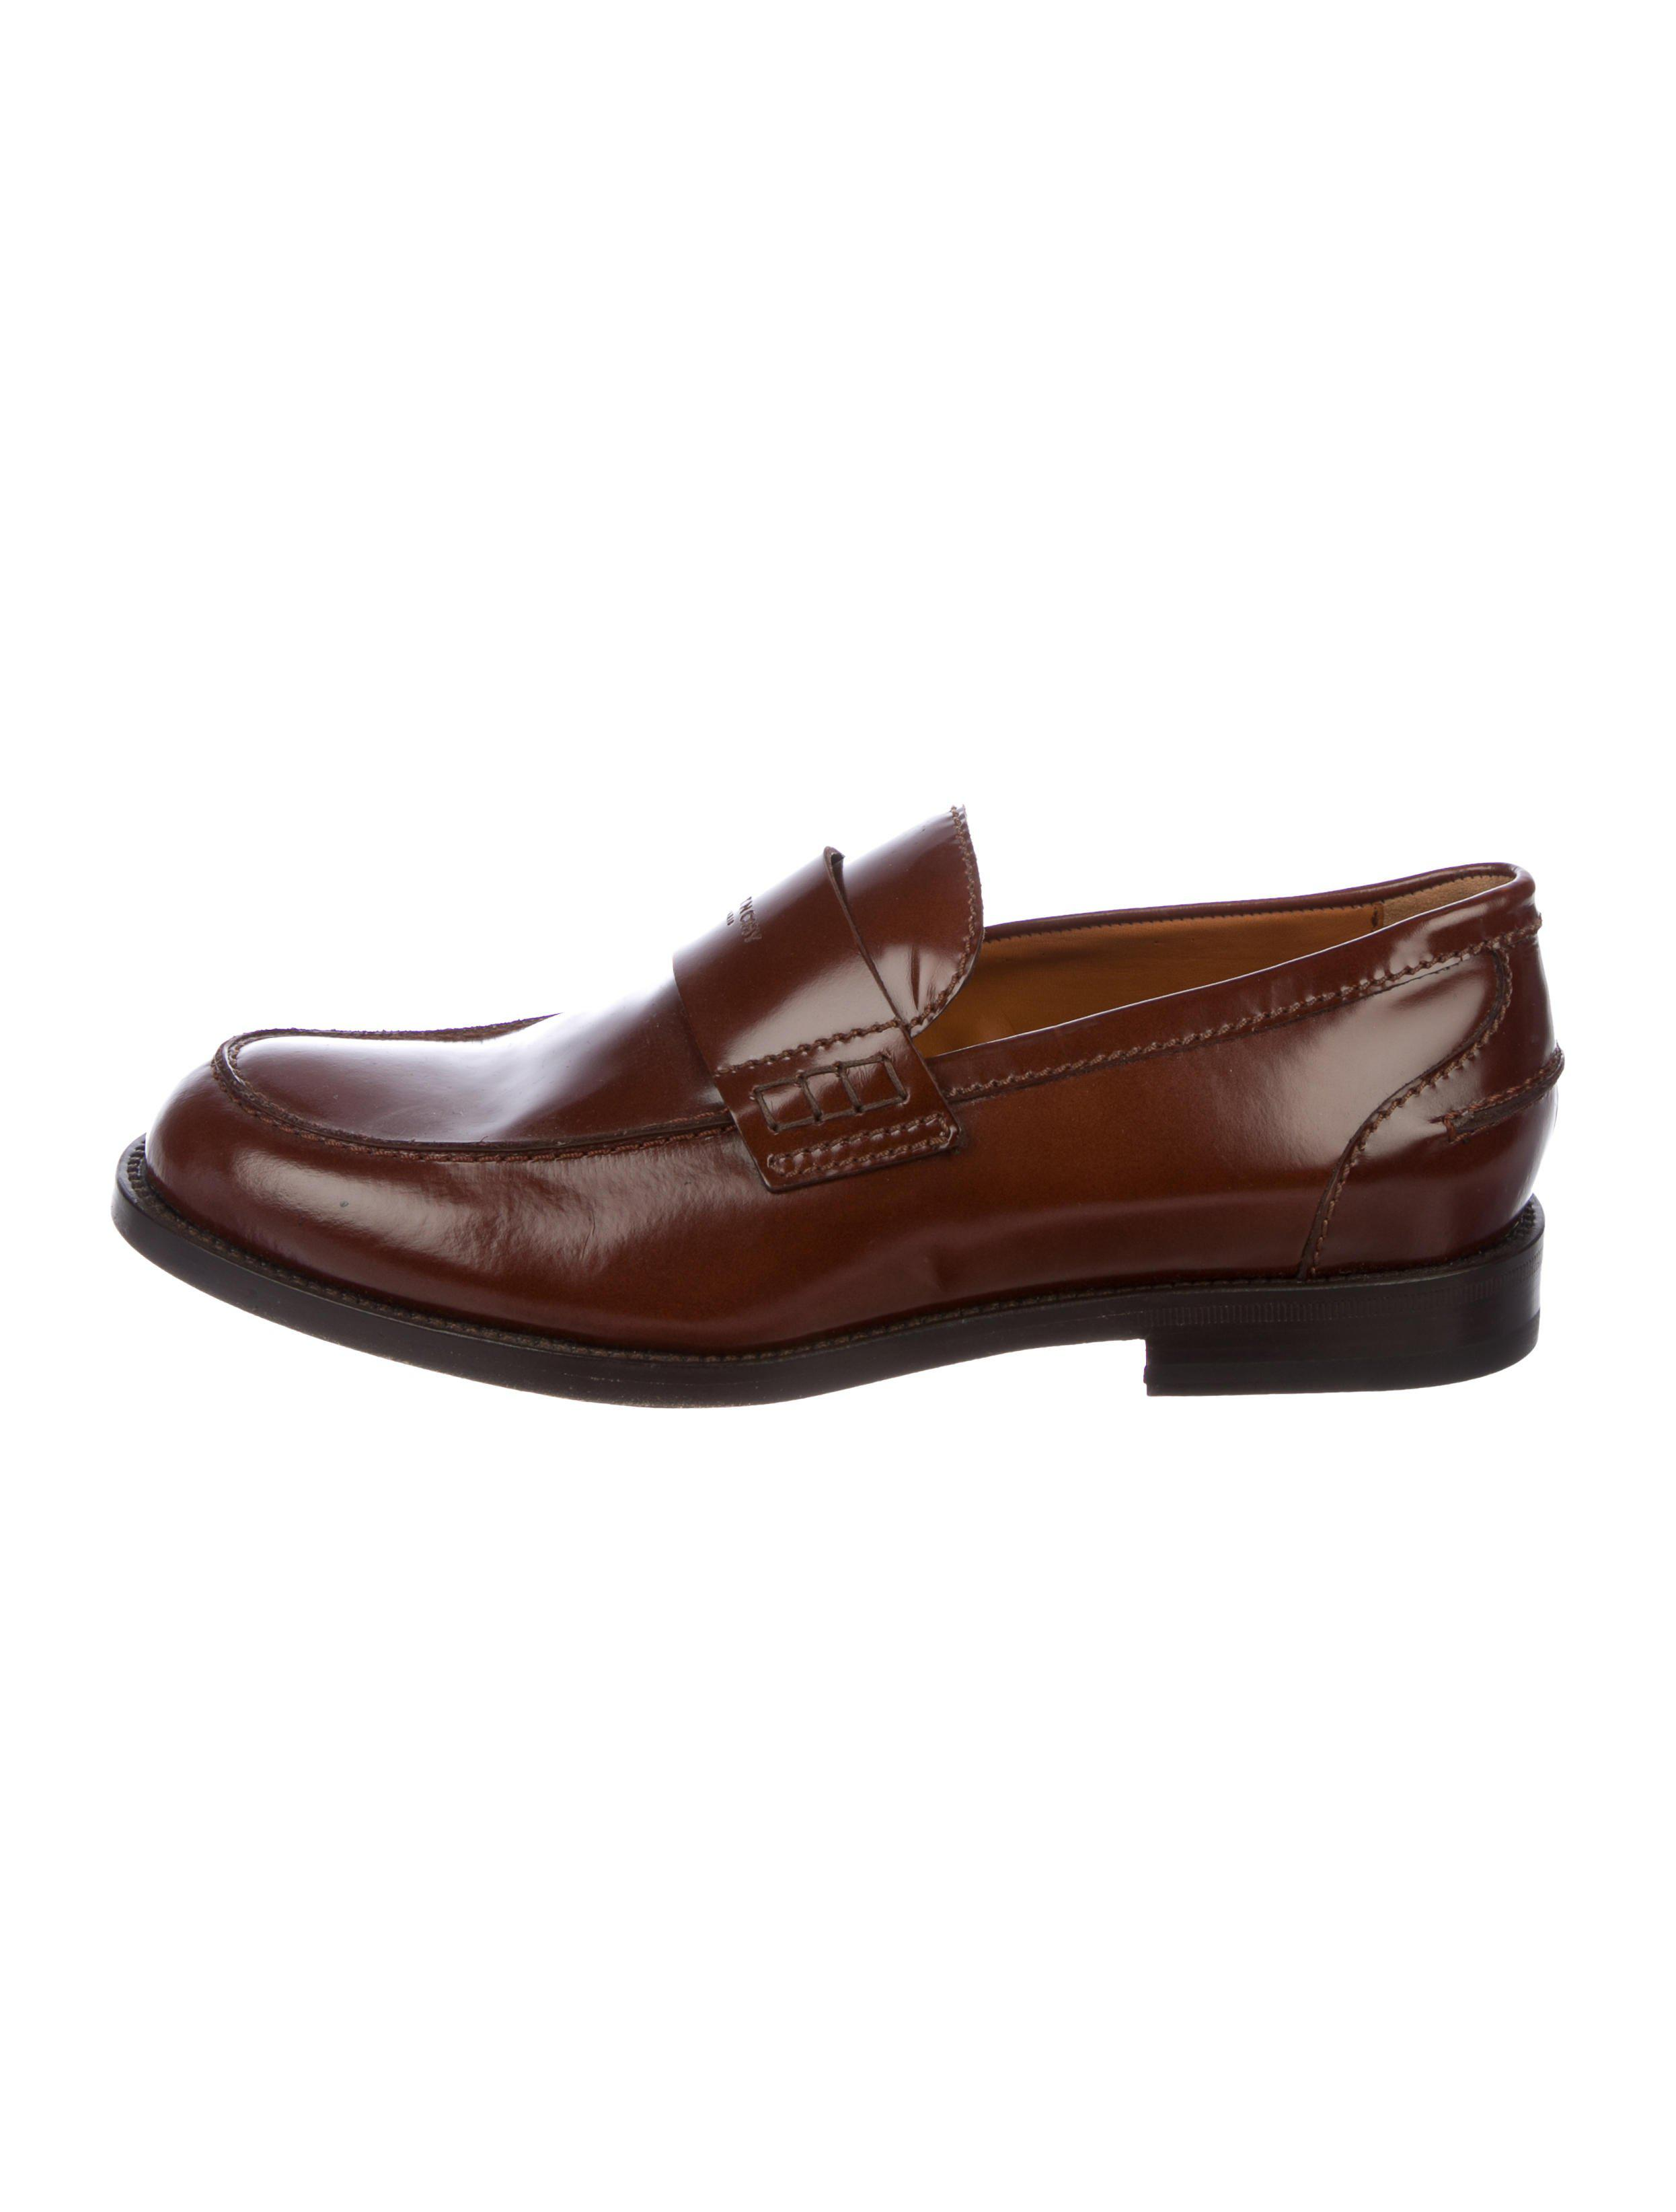 Givenchy Logo Round-Toe Loafers cheap sale outlet locations online sale ofhsH